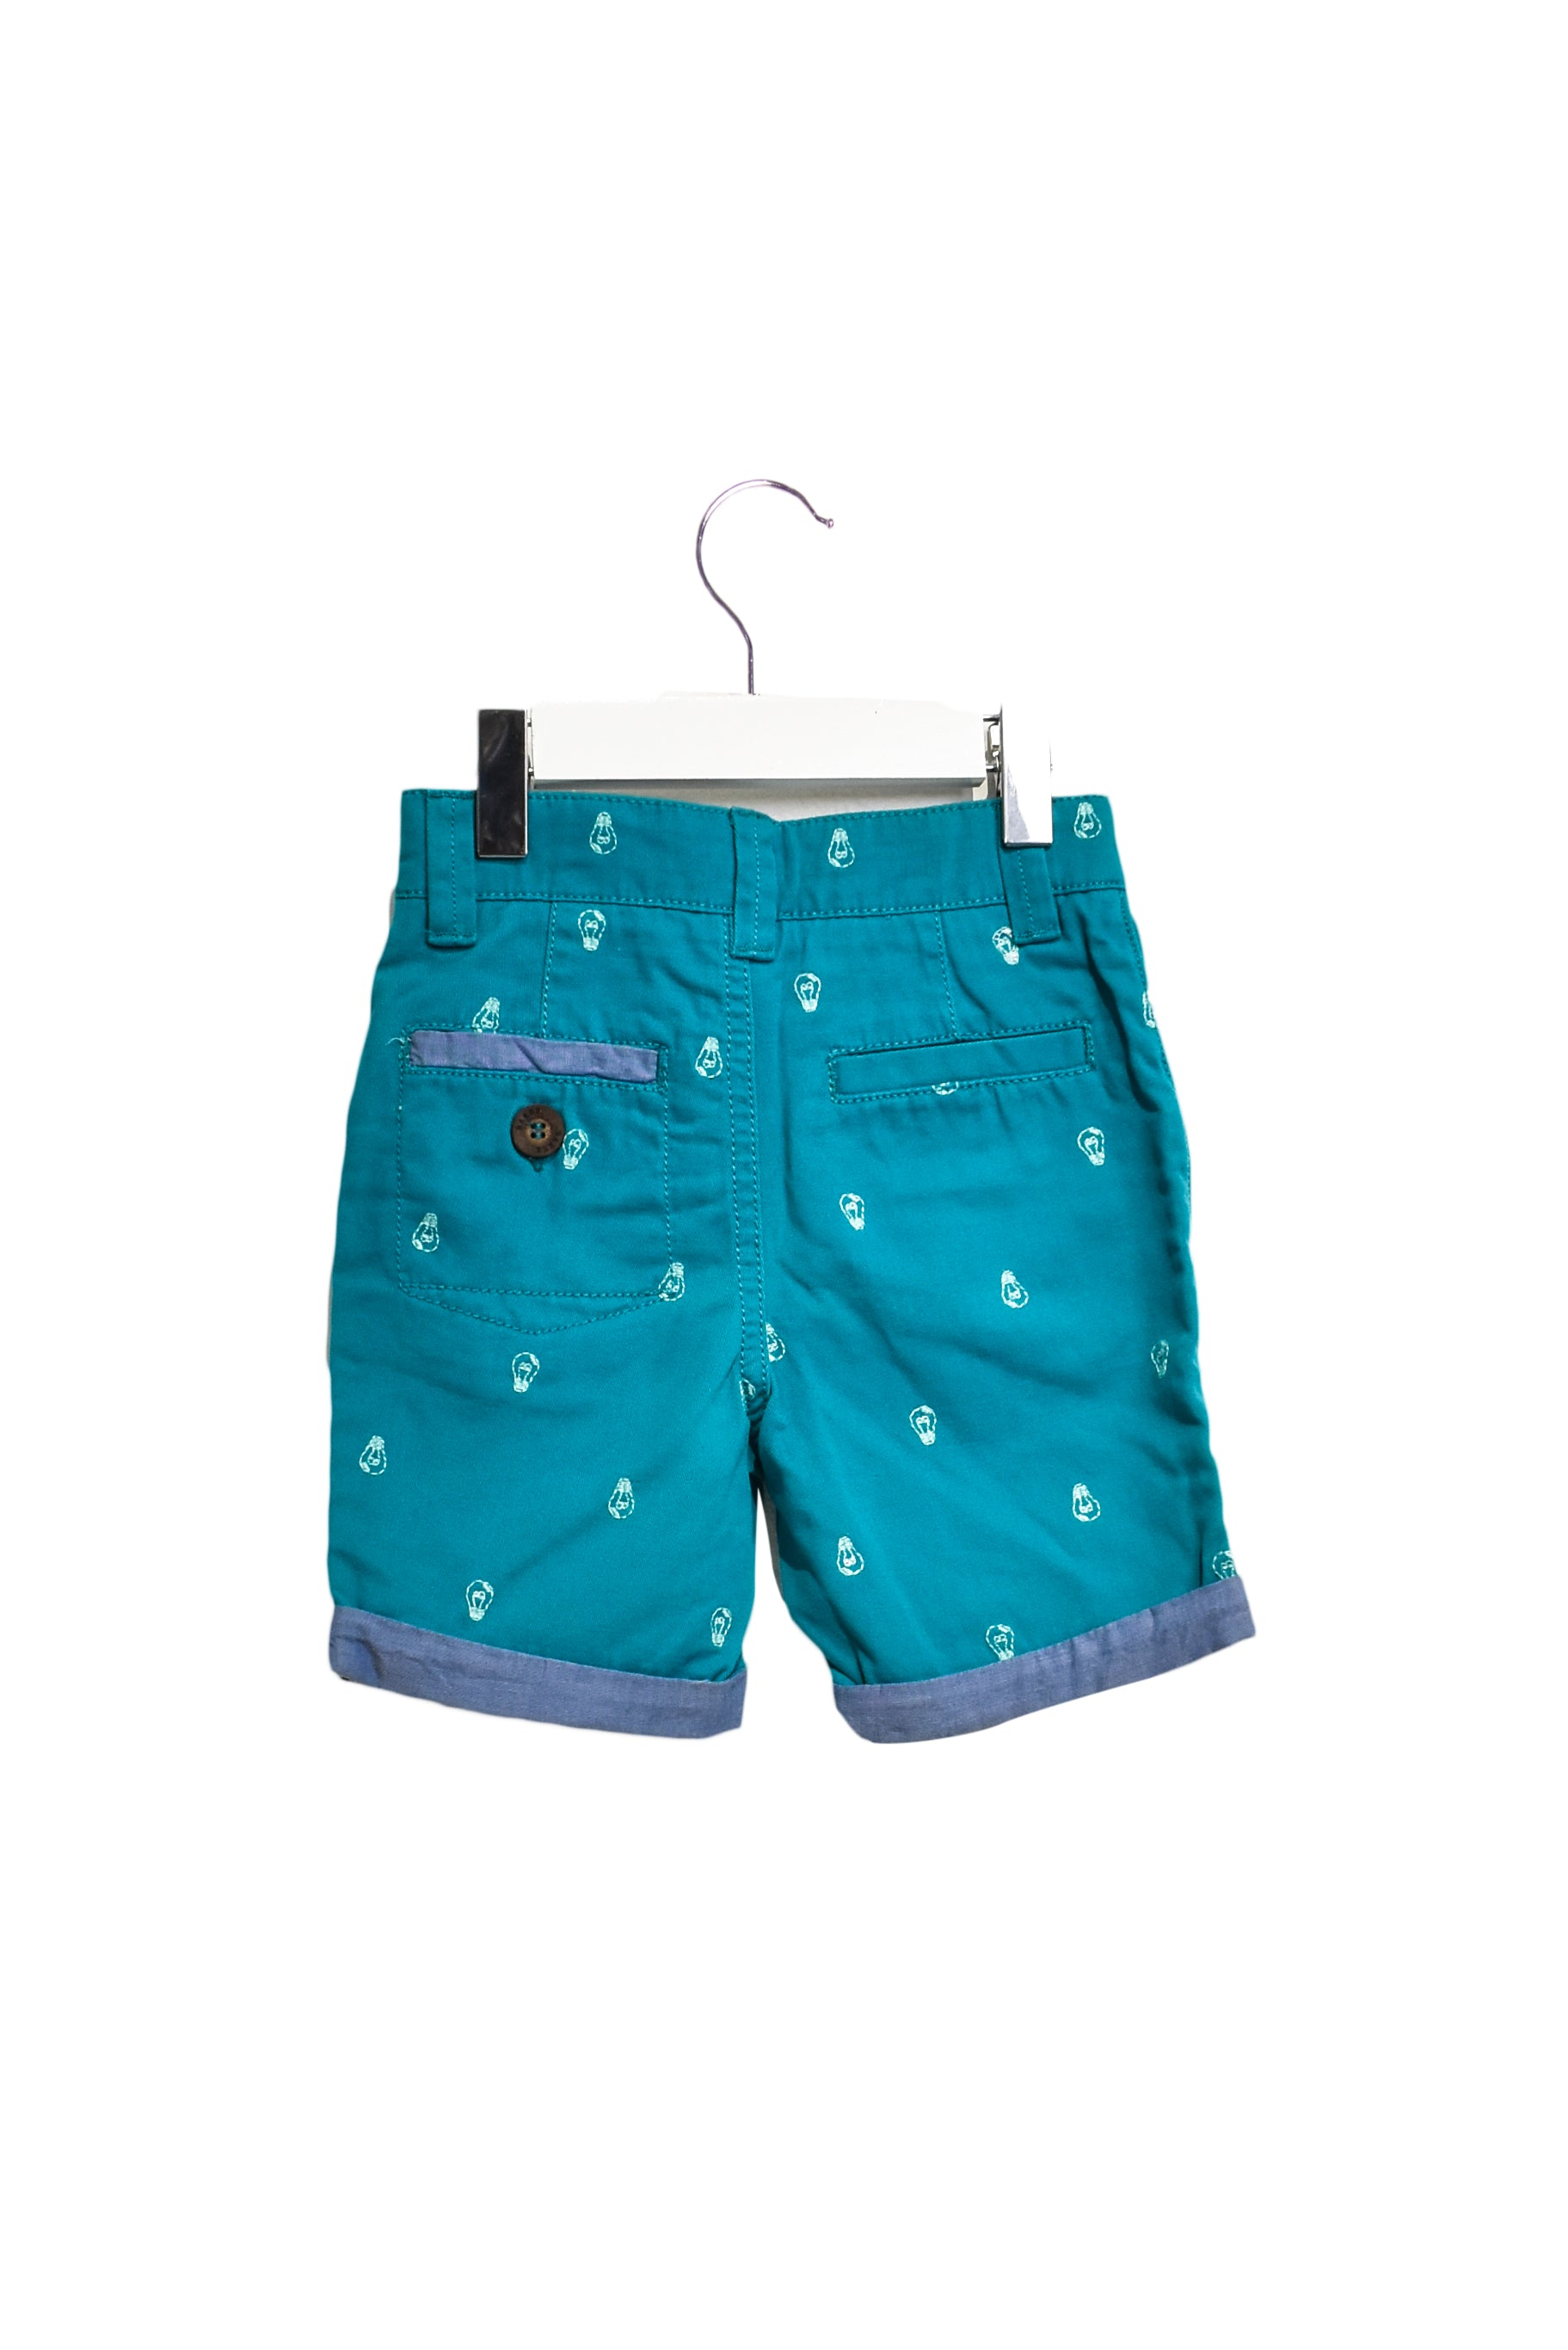 344cbfec99f5 10016224 Baker by Ted Baker Baby~Shorts 12-18M at Retykle